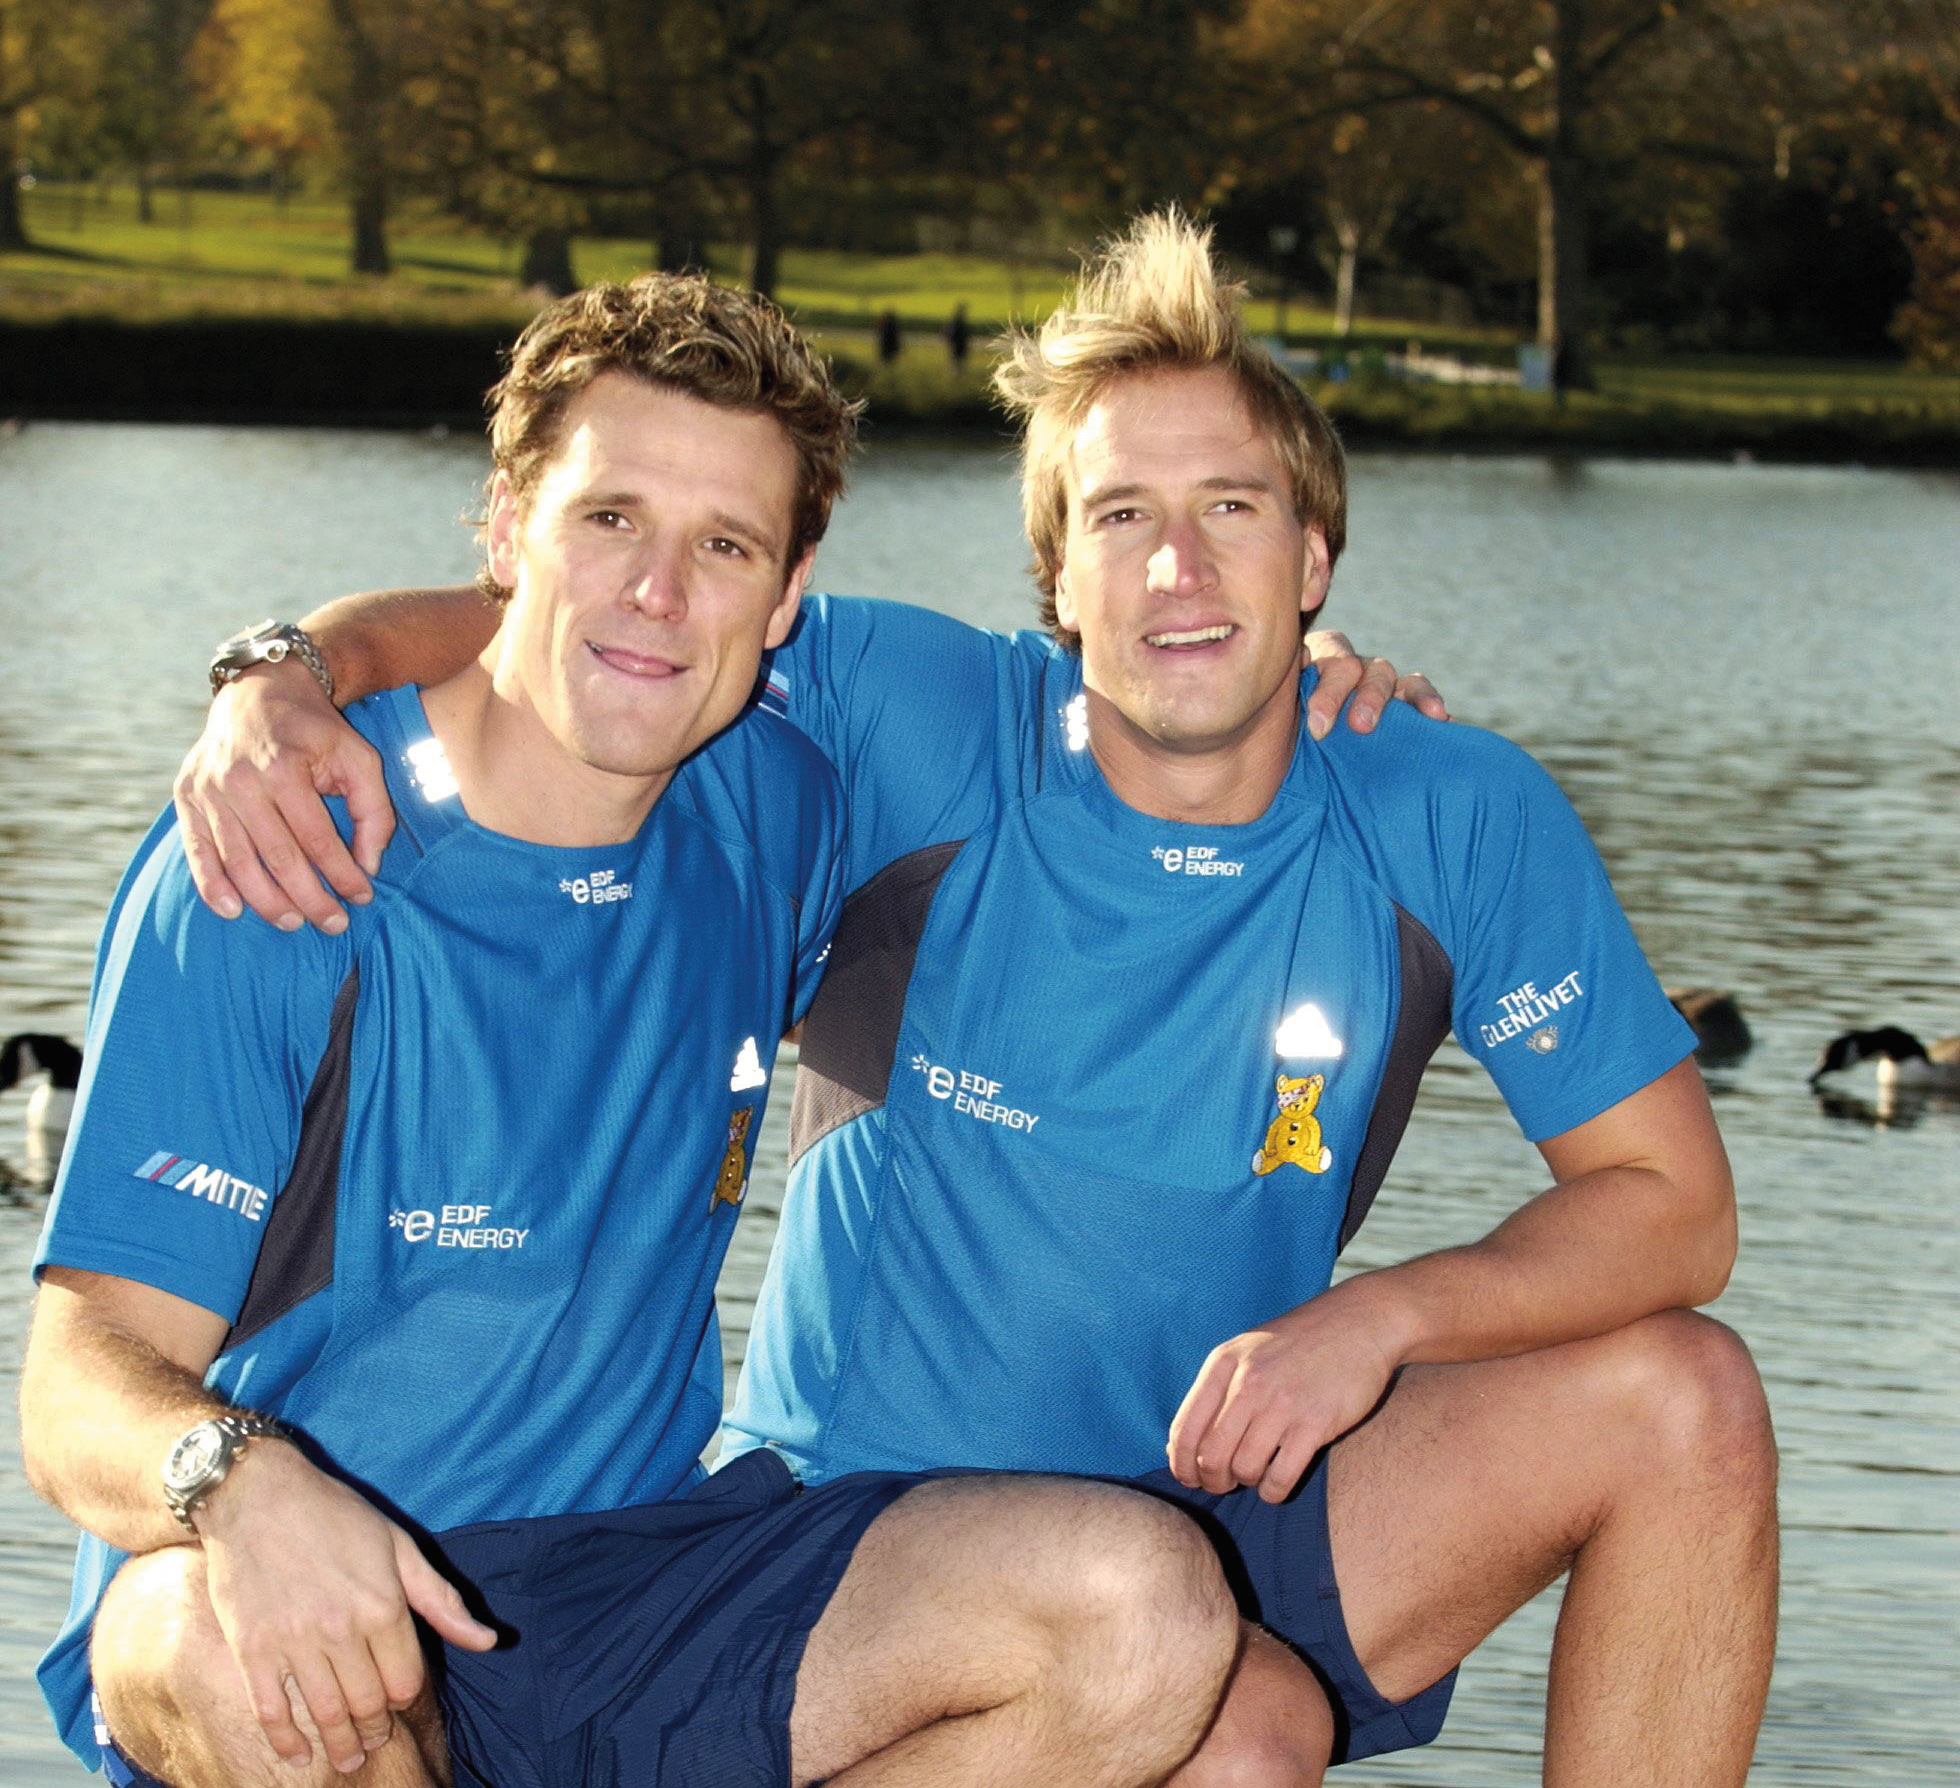 Ben Fogle and James Cracknell